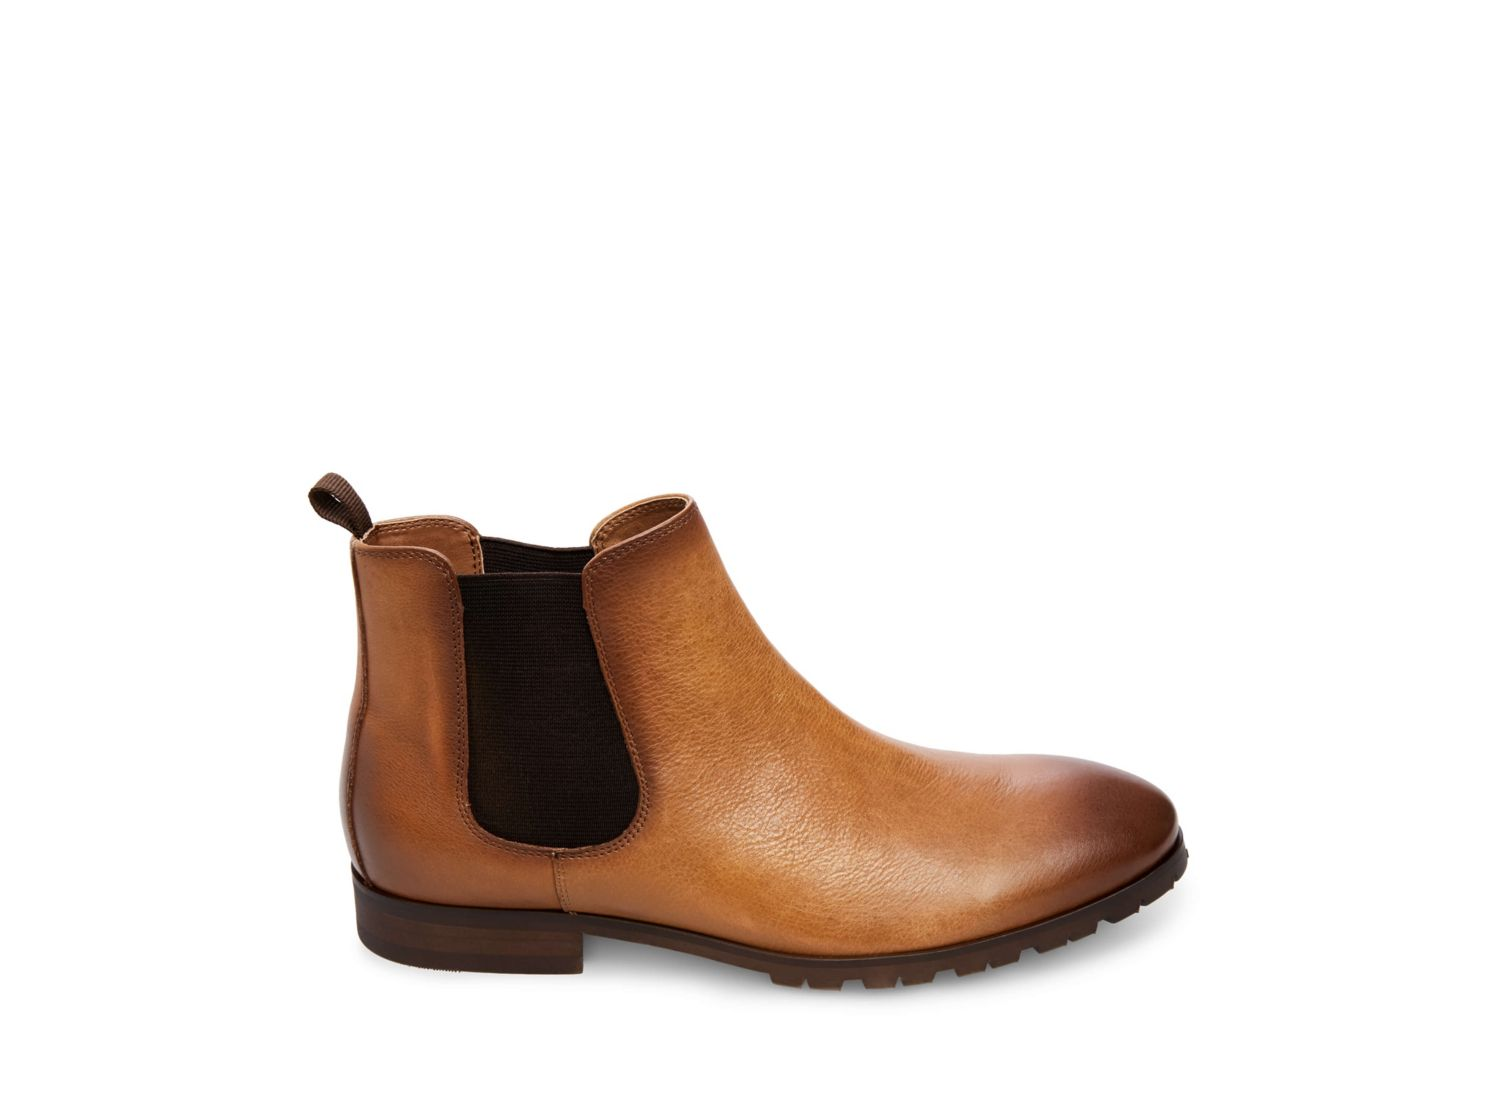 STOW TAN LEATHER - Steve Madden